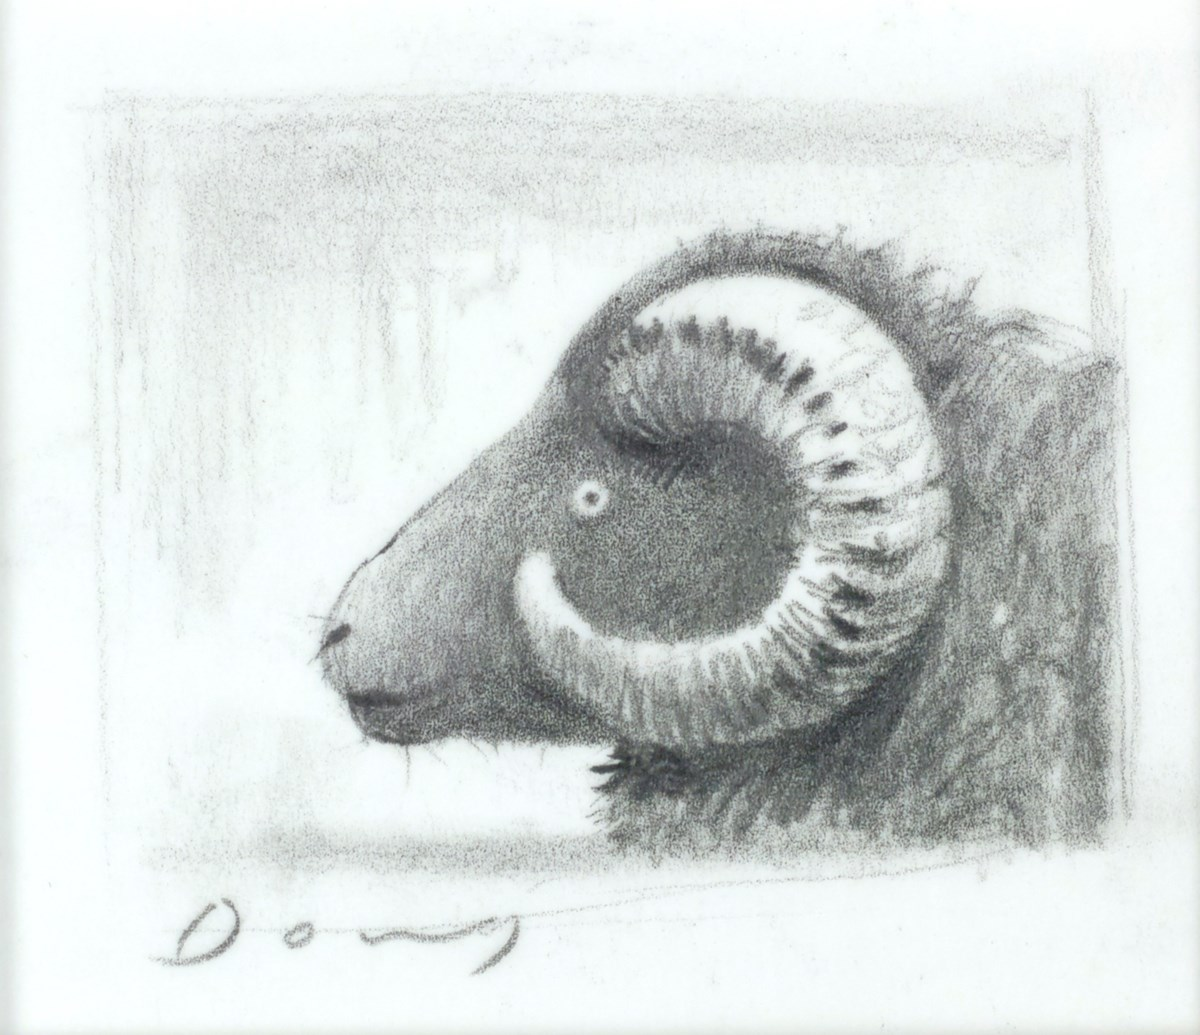 Ram (Study II) by doug hyde -  sized 4x3 inches. Available from Whitewall Galleries